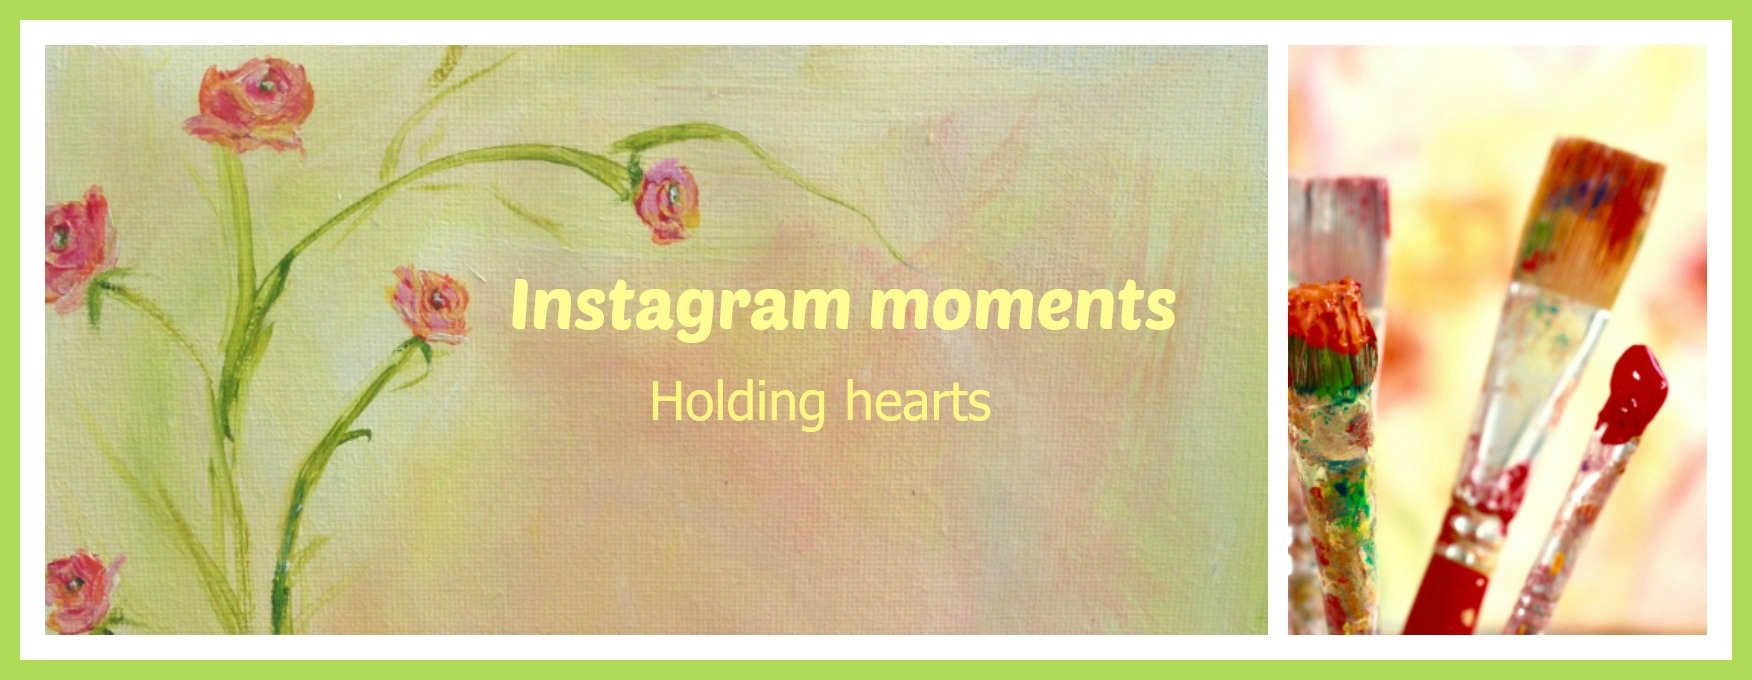 instagram-moments-holding-hearts